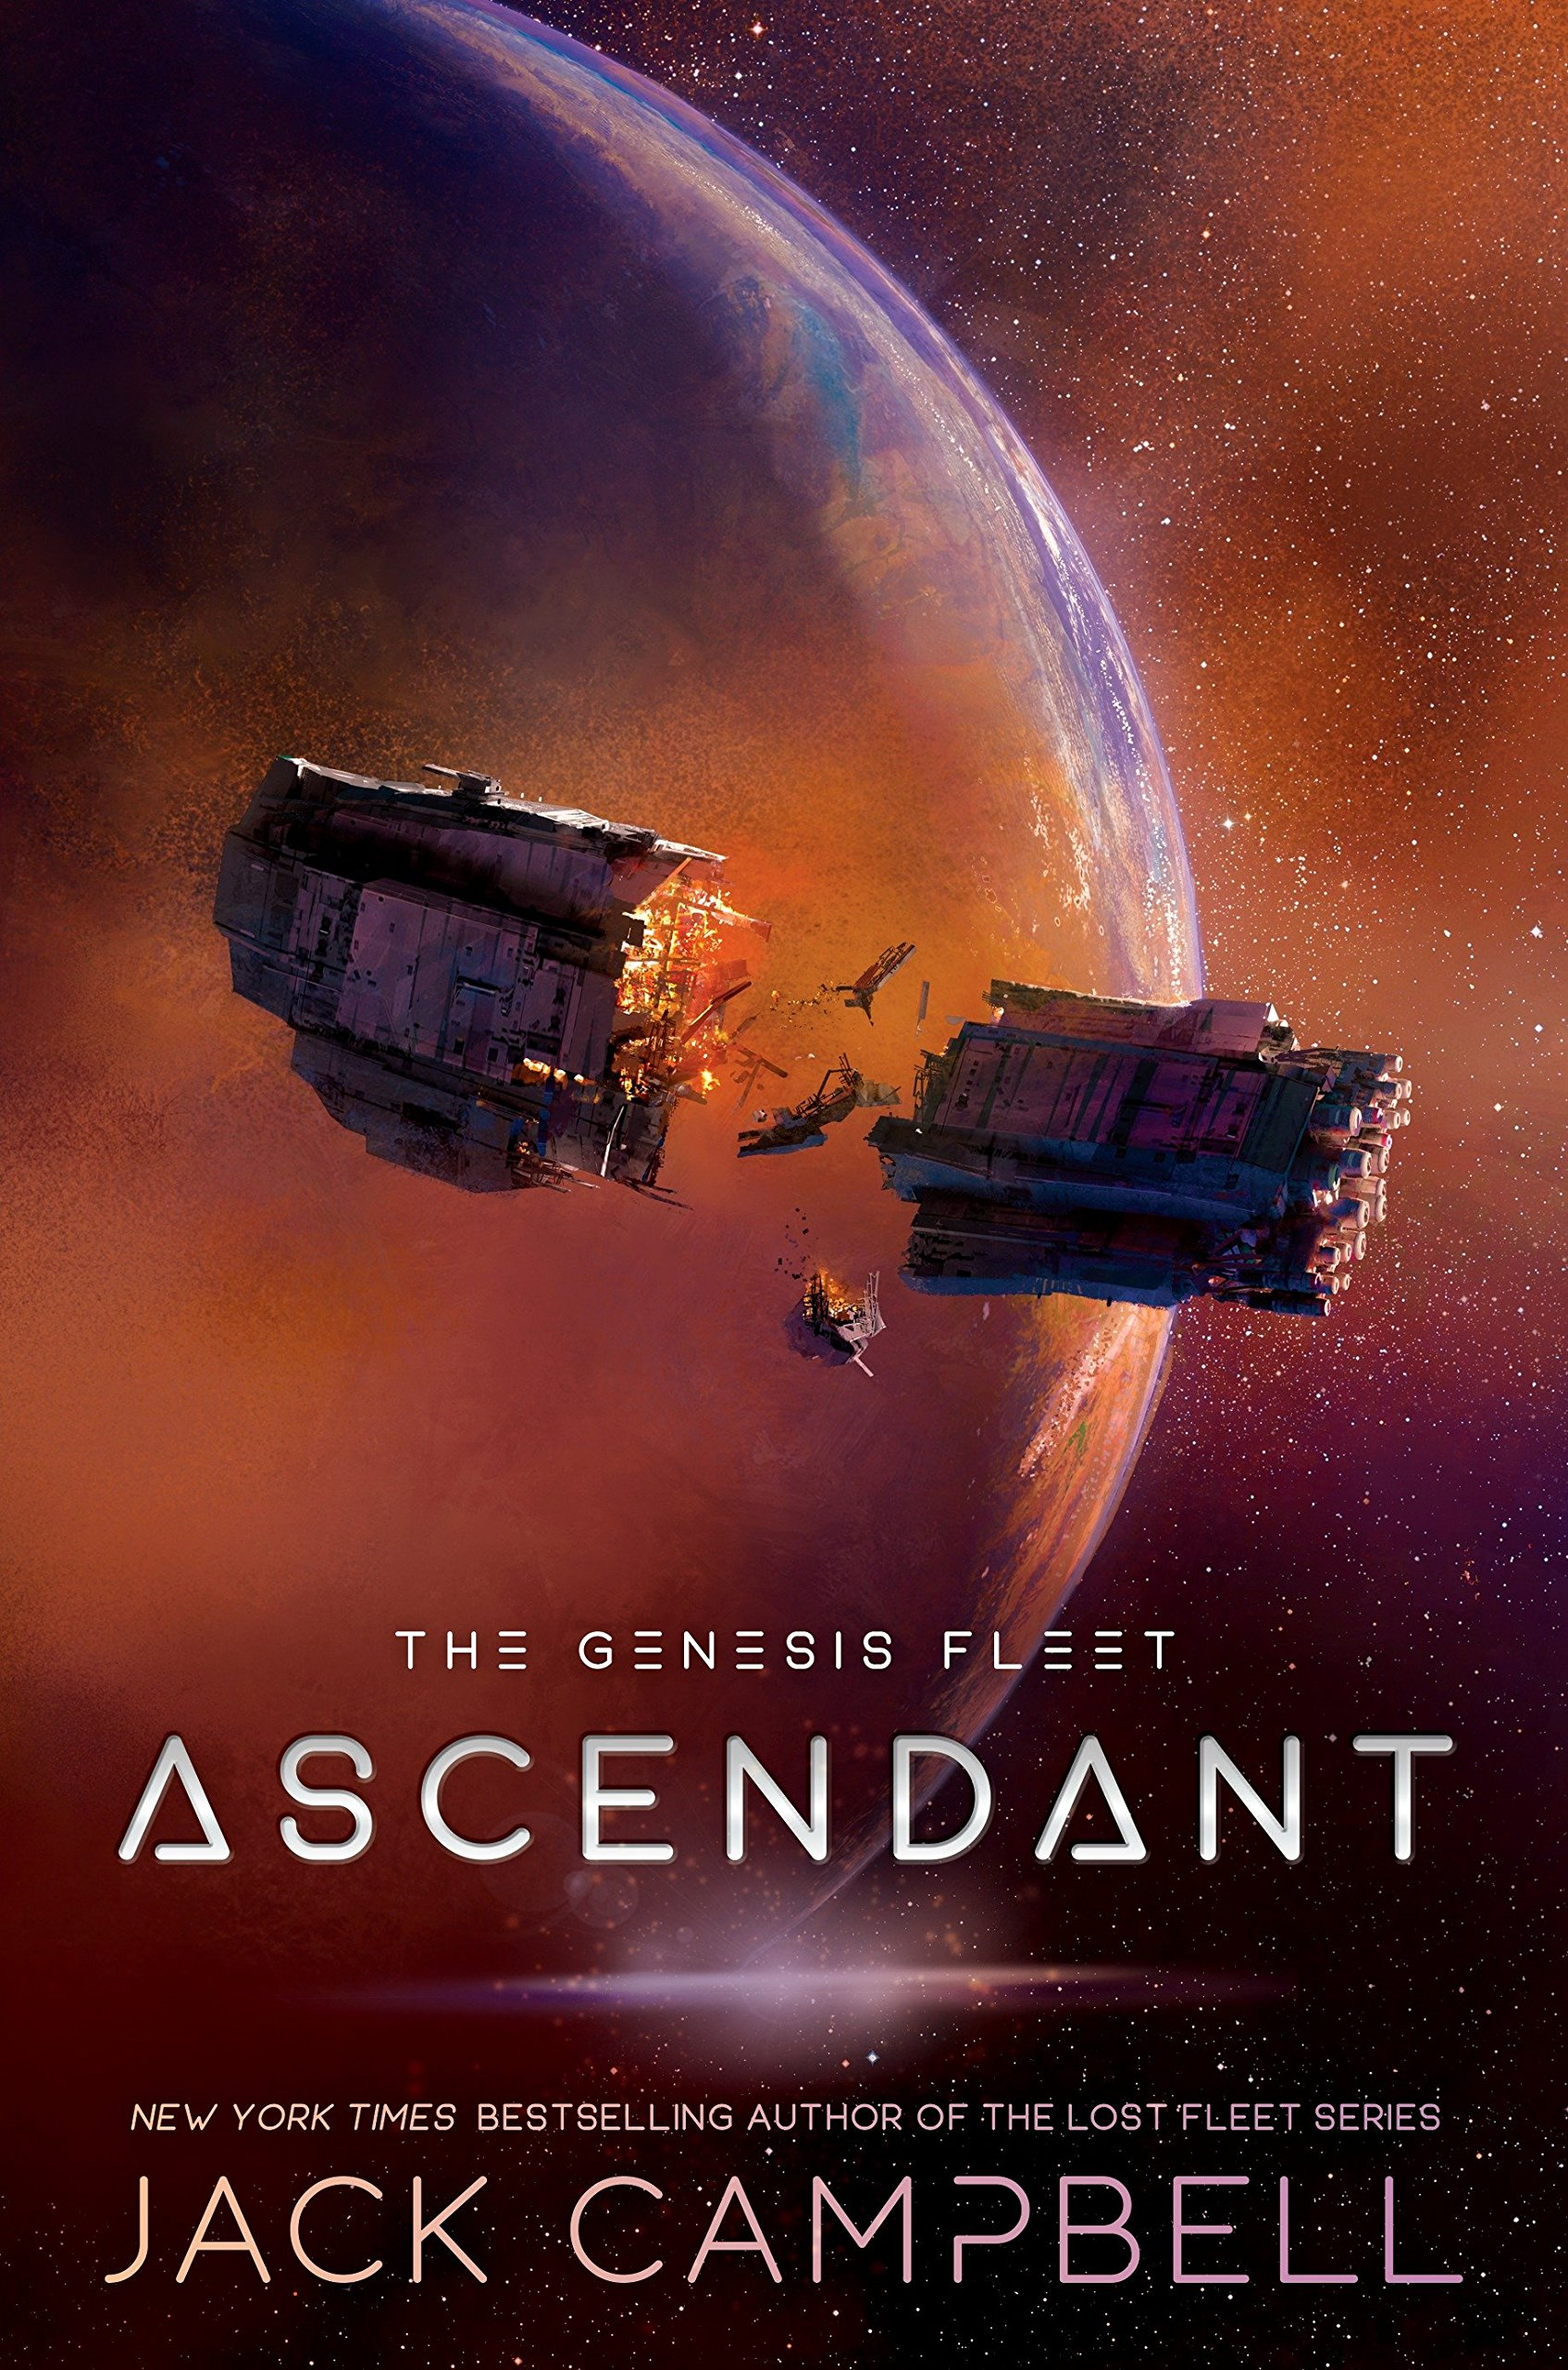 Amazon.com: Ascendant (Genesis Fleet, The) (9781101988374): Jack Campbell:  Books